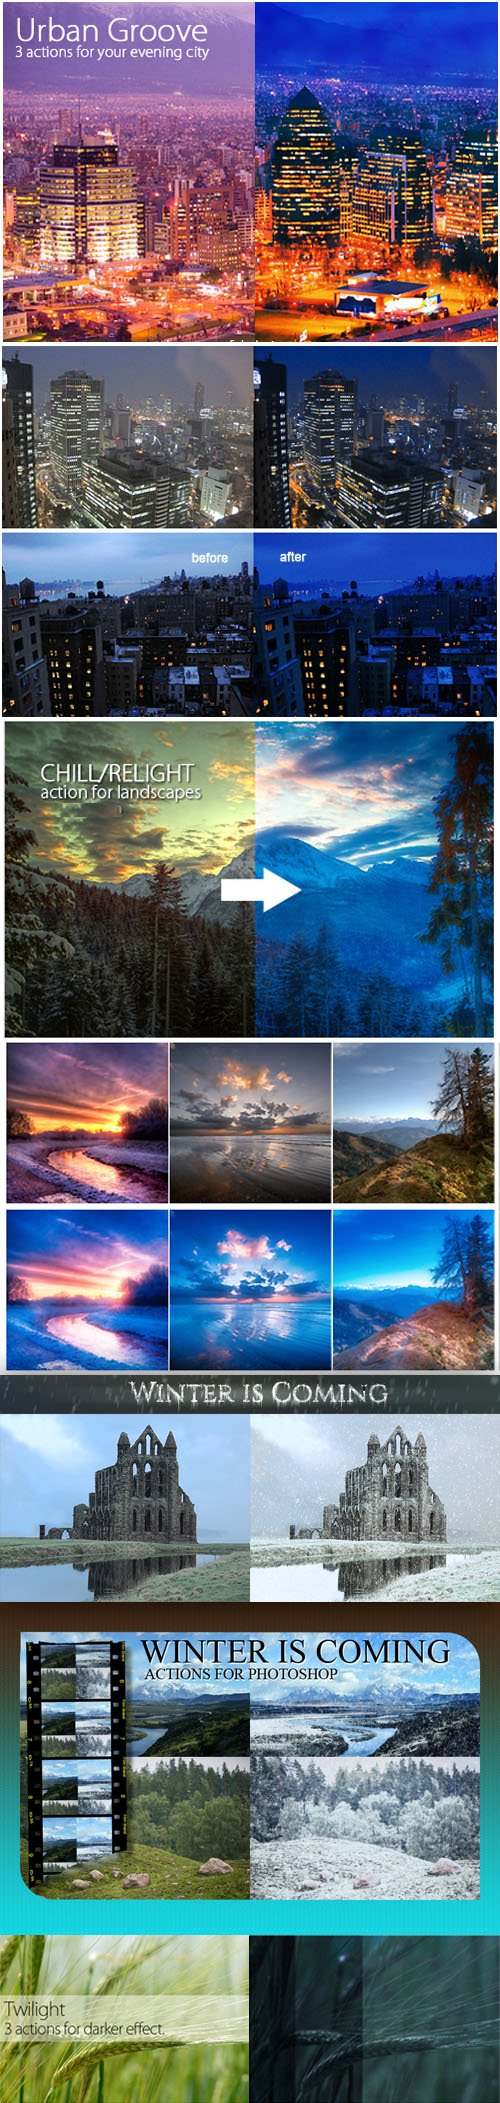 Photoshop Action - Urban Groove, Chill, Relight, Twilight & Winter is Coming